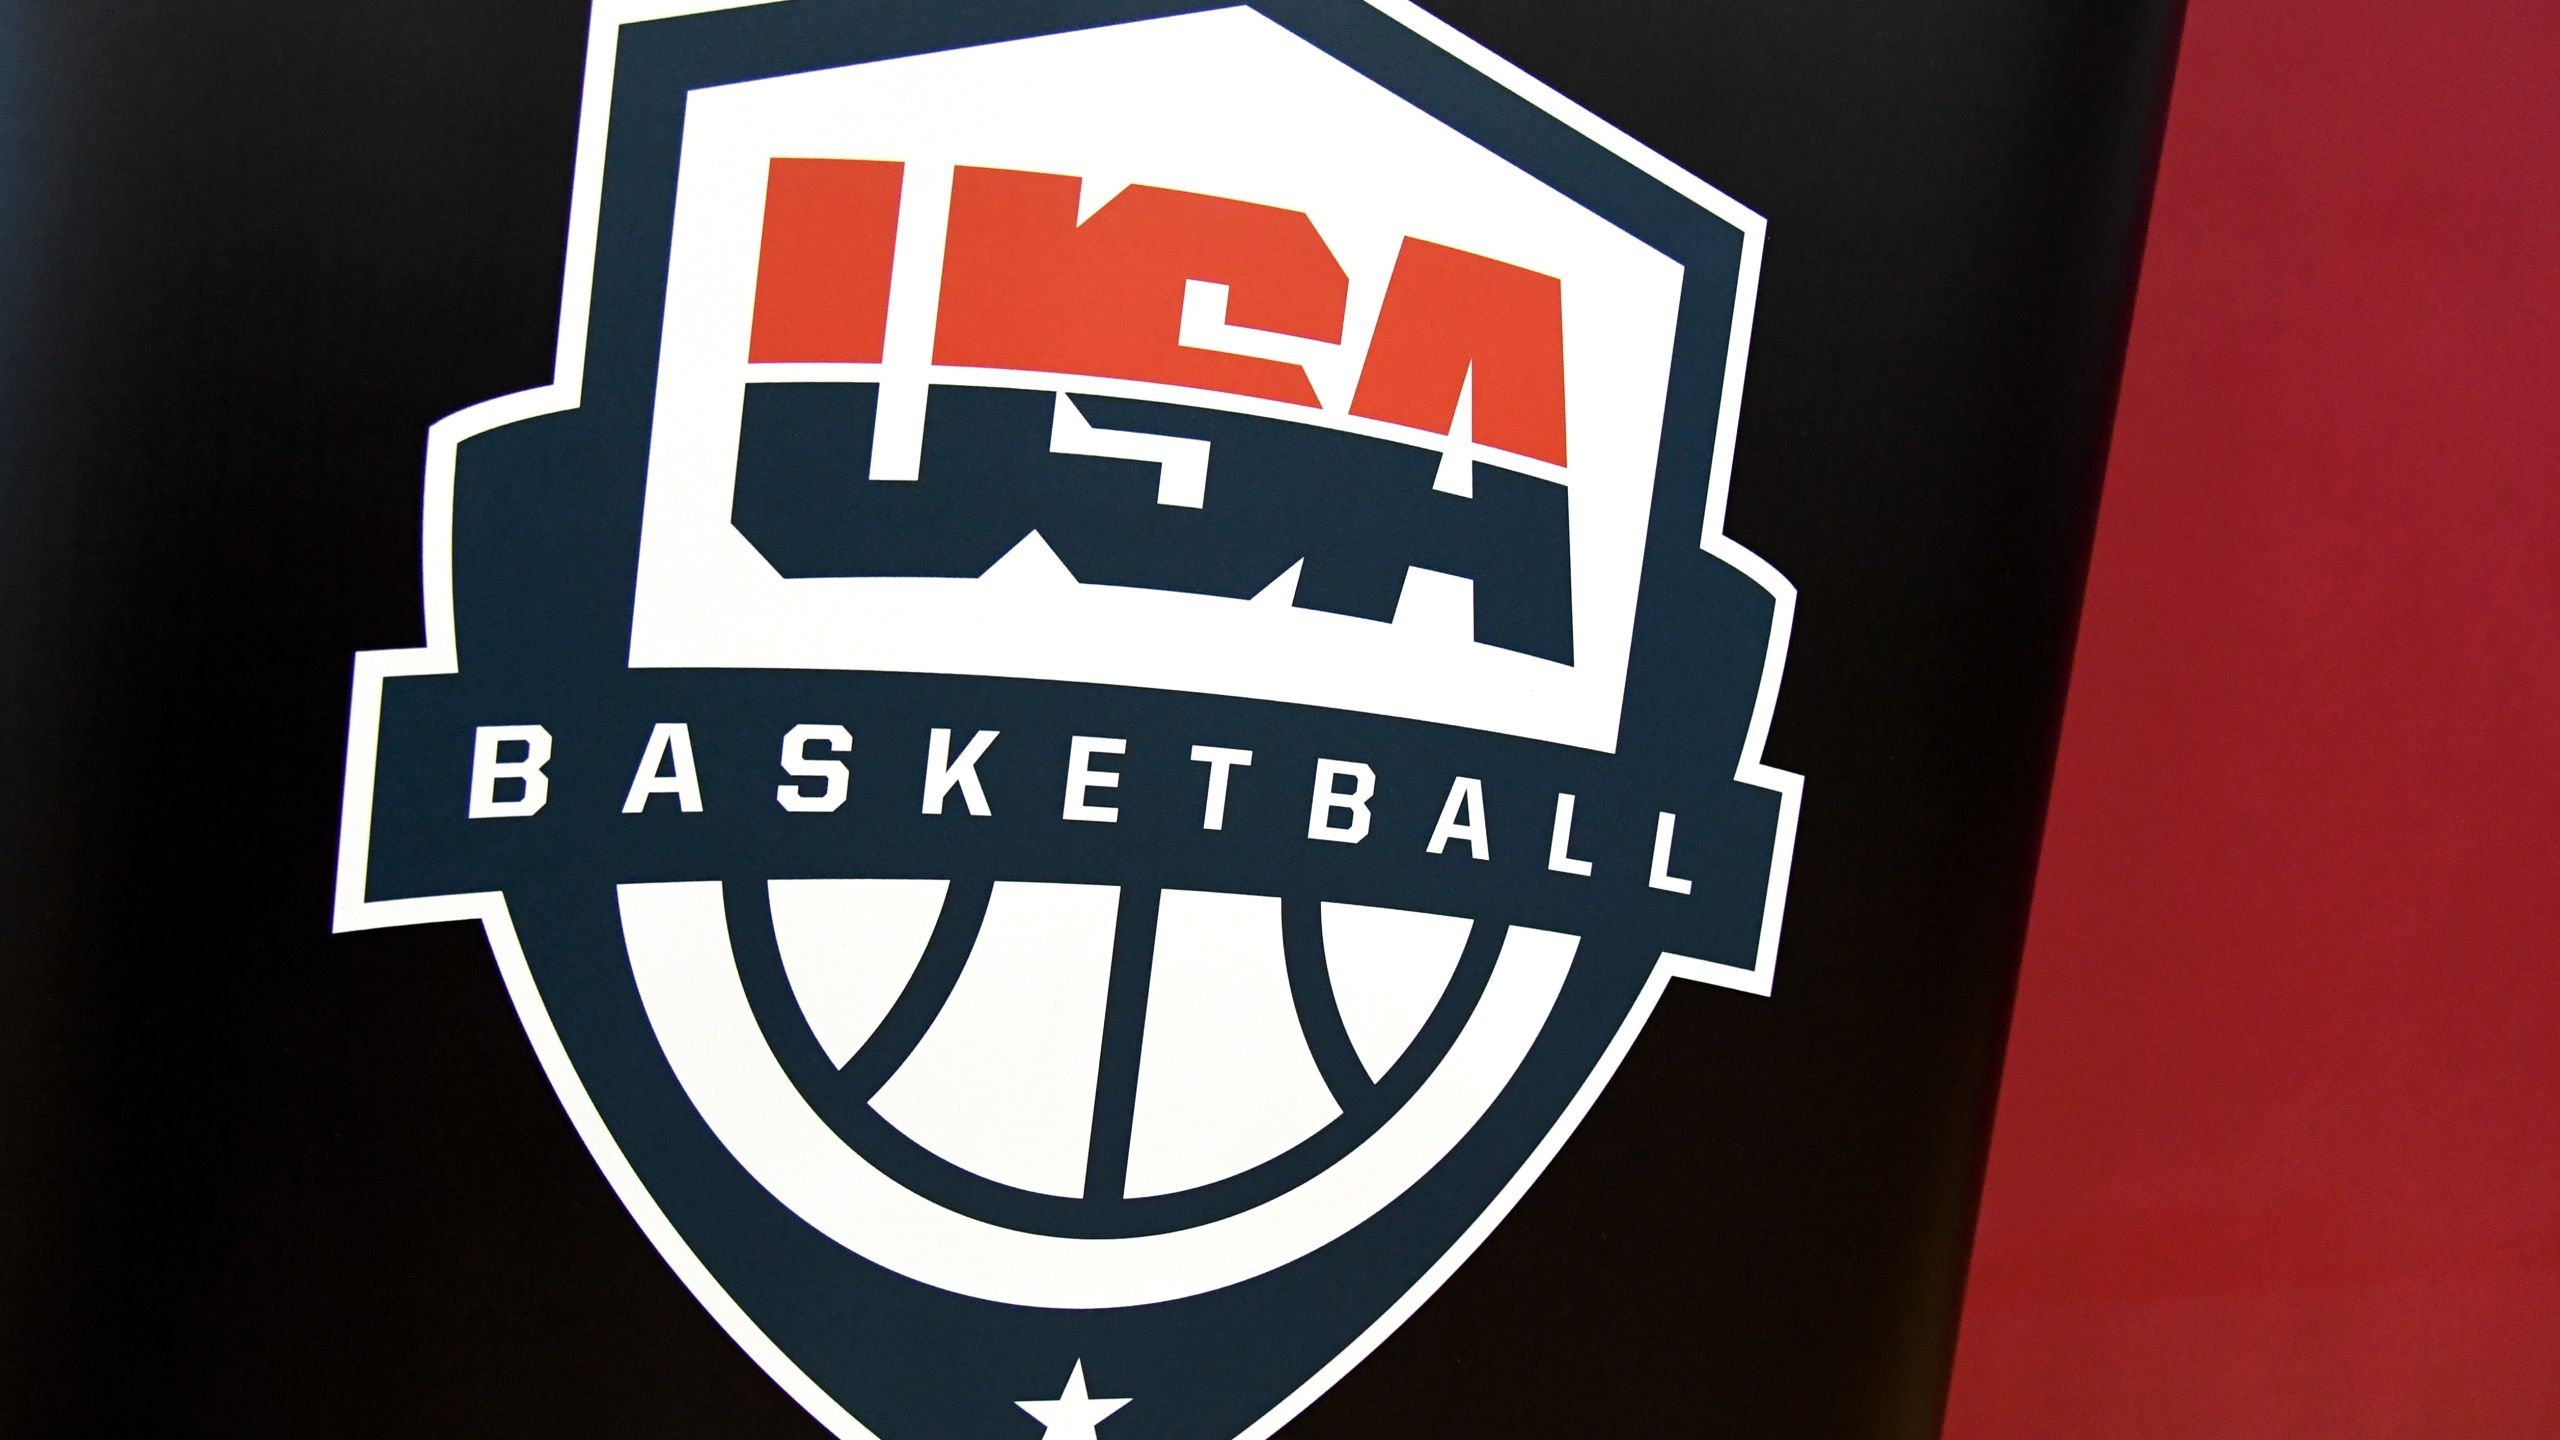 A USA Basketball logo is displayed at a practice session at the 2019 USA Basketball Men's National Team World Cup minicamp at the Mendenhall Center at UNLV on August 5, 2019, in Las Vegas, Nevada. (Ethan Miller/Getty Images)